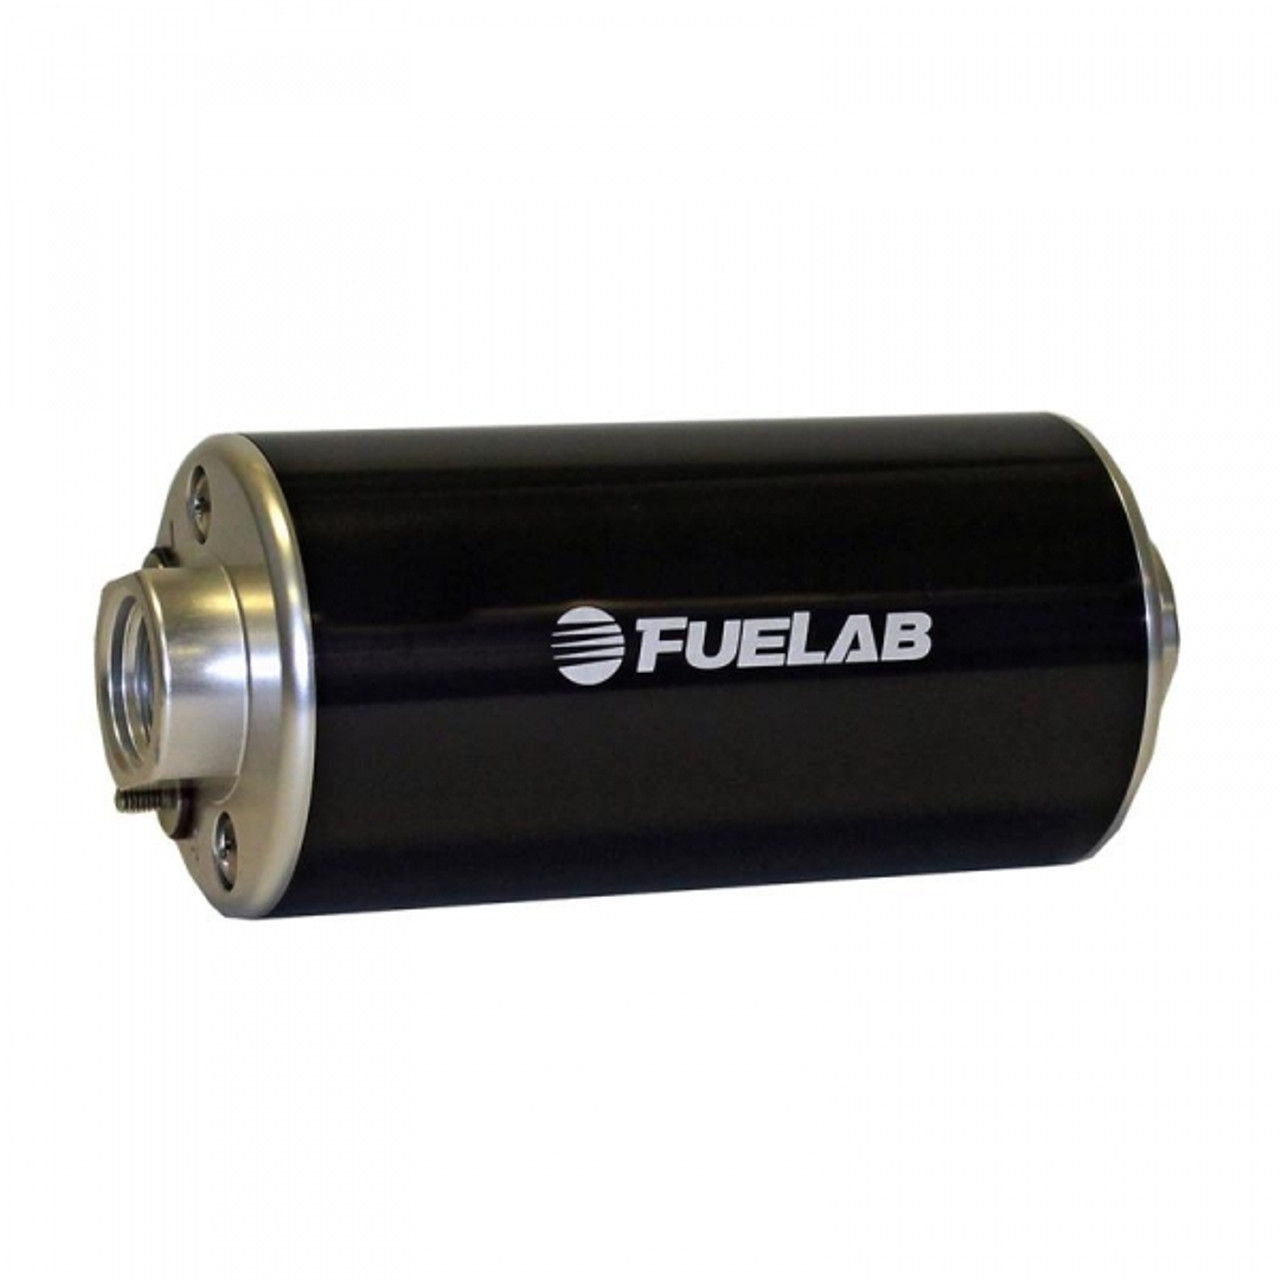 FUELAB VELOCITY 100 IN-LINE LIFT PUMP 10303